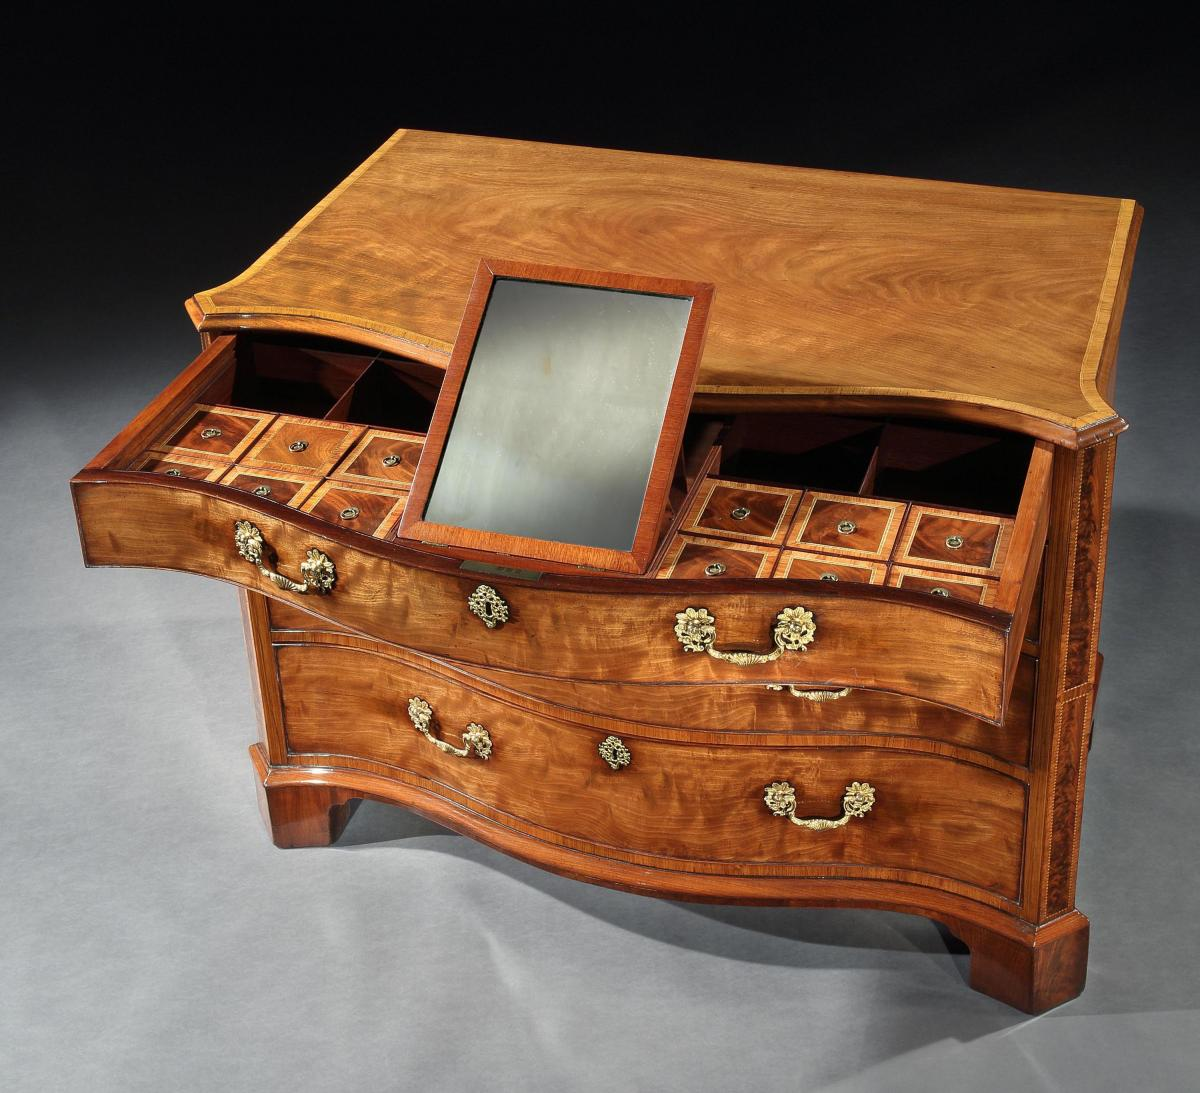 A George III Mahogany Chest of Drawers in the manner of Thomas Chippendale